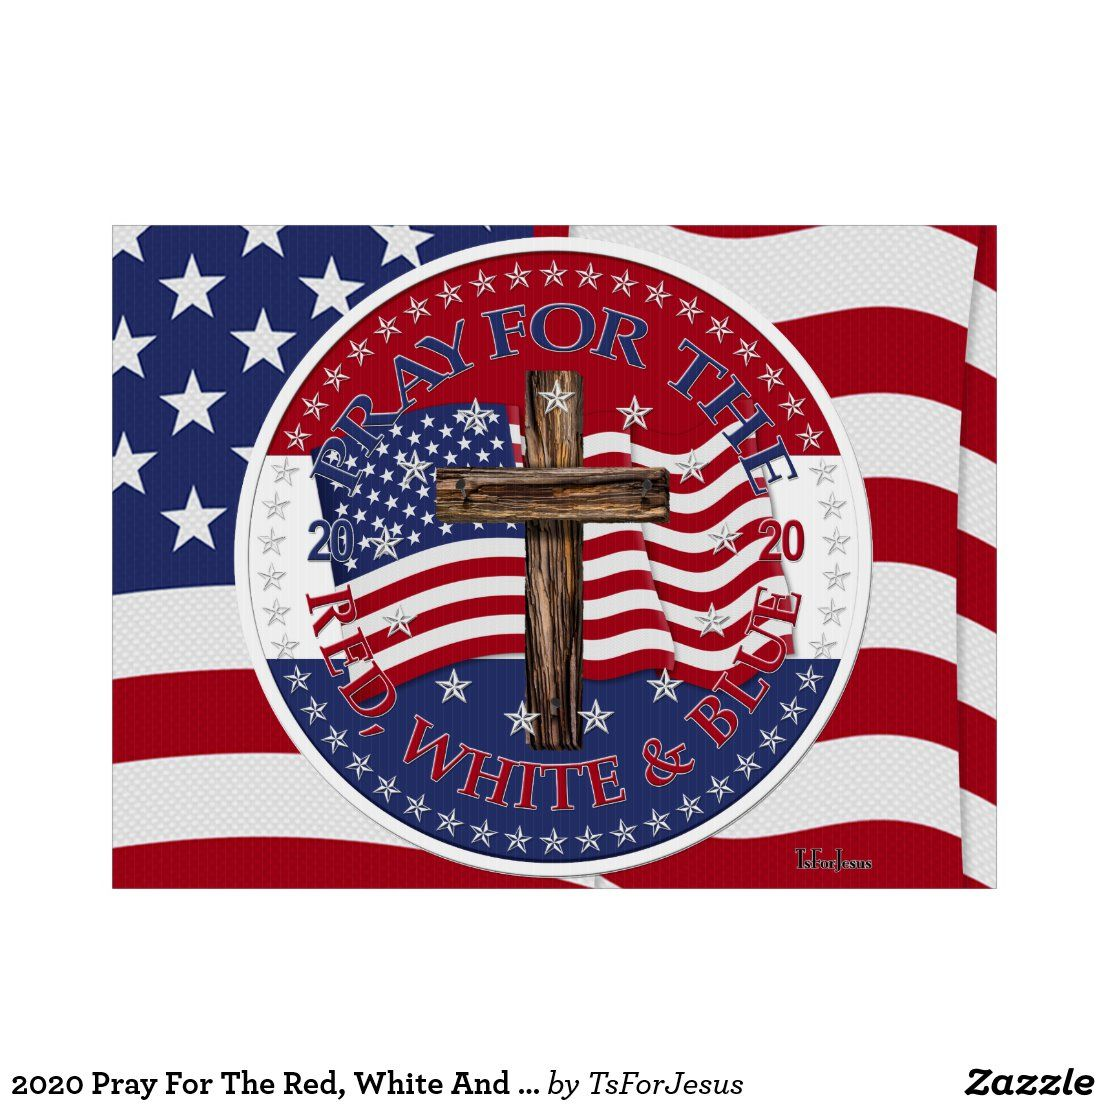 2020 Pray For The Red White And Blue Cross Flag Sign Zazzle Com In 2020 Cross Flag Flag Signs Flag